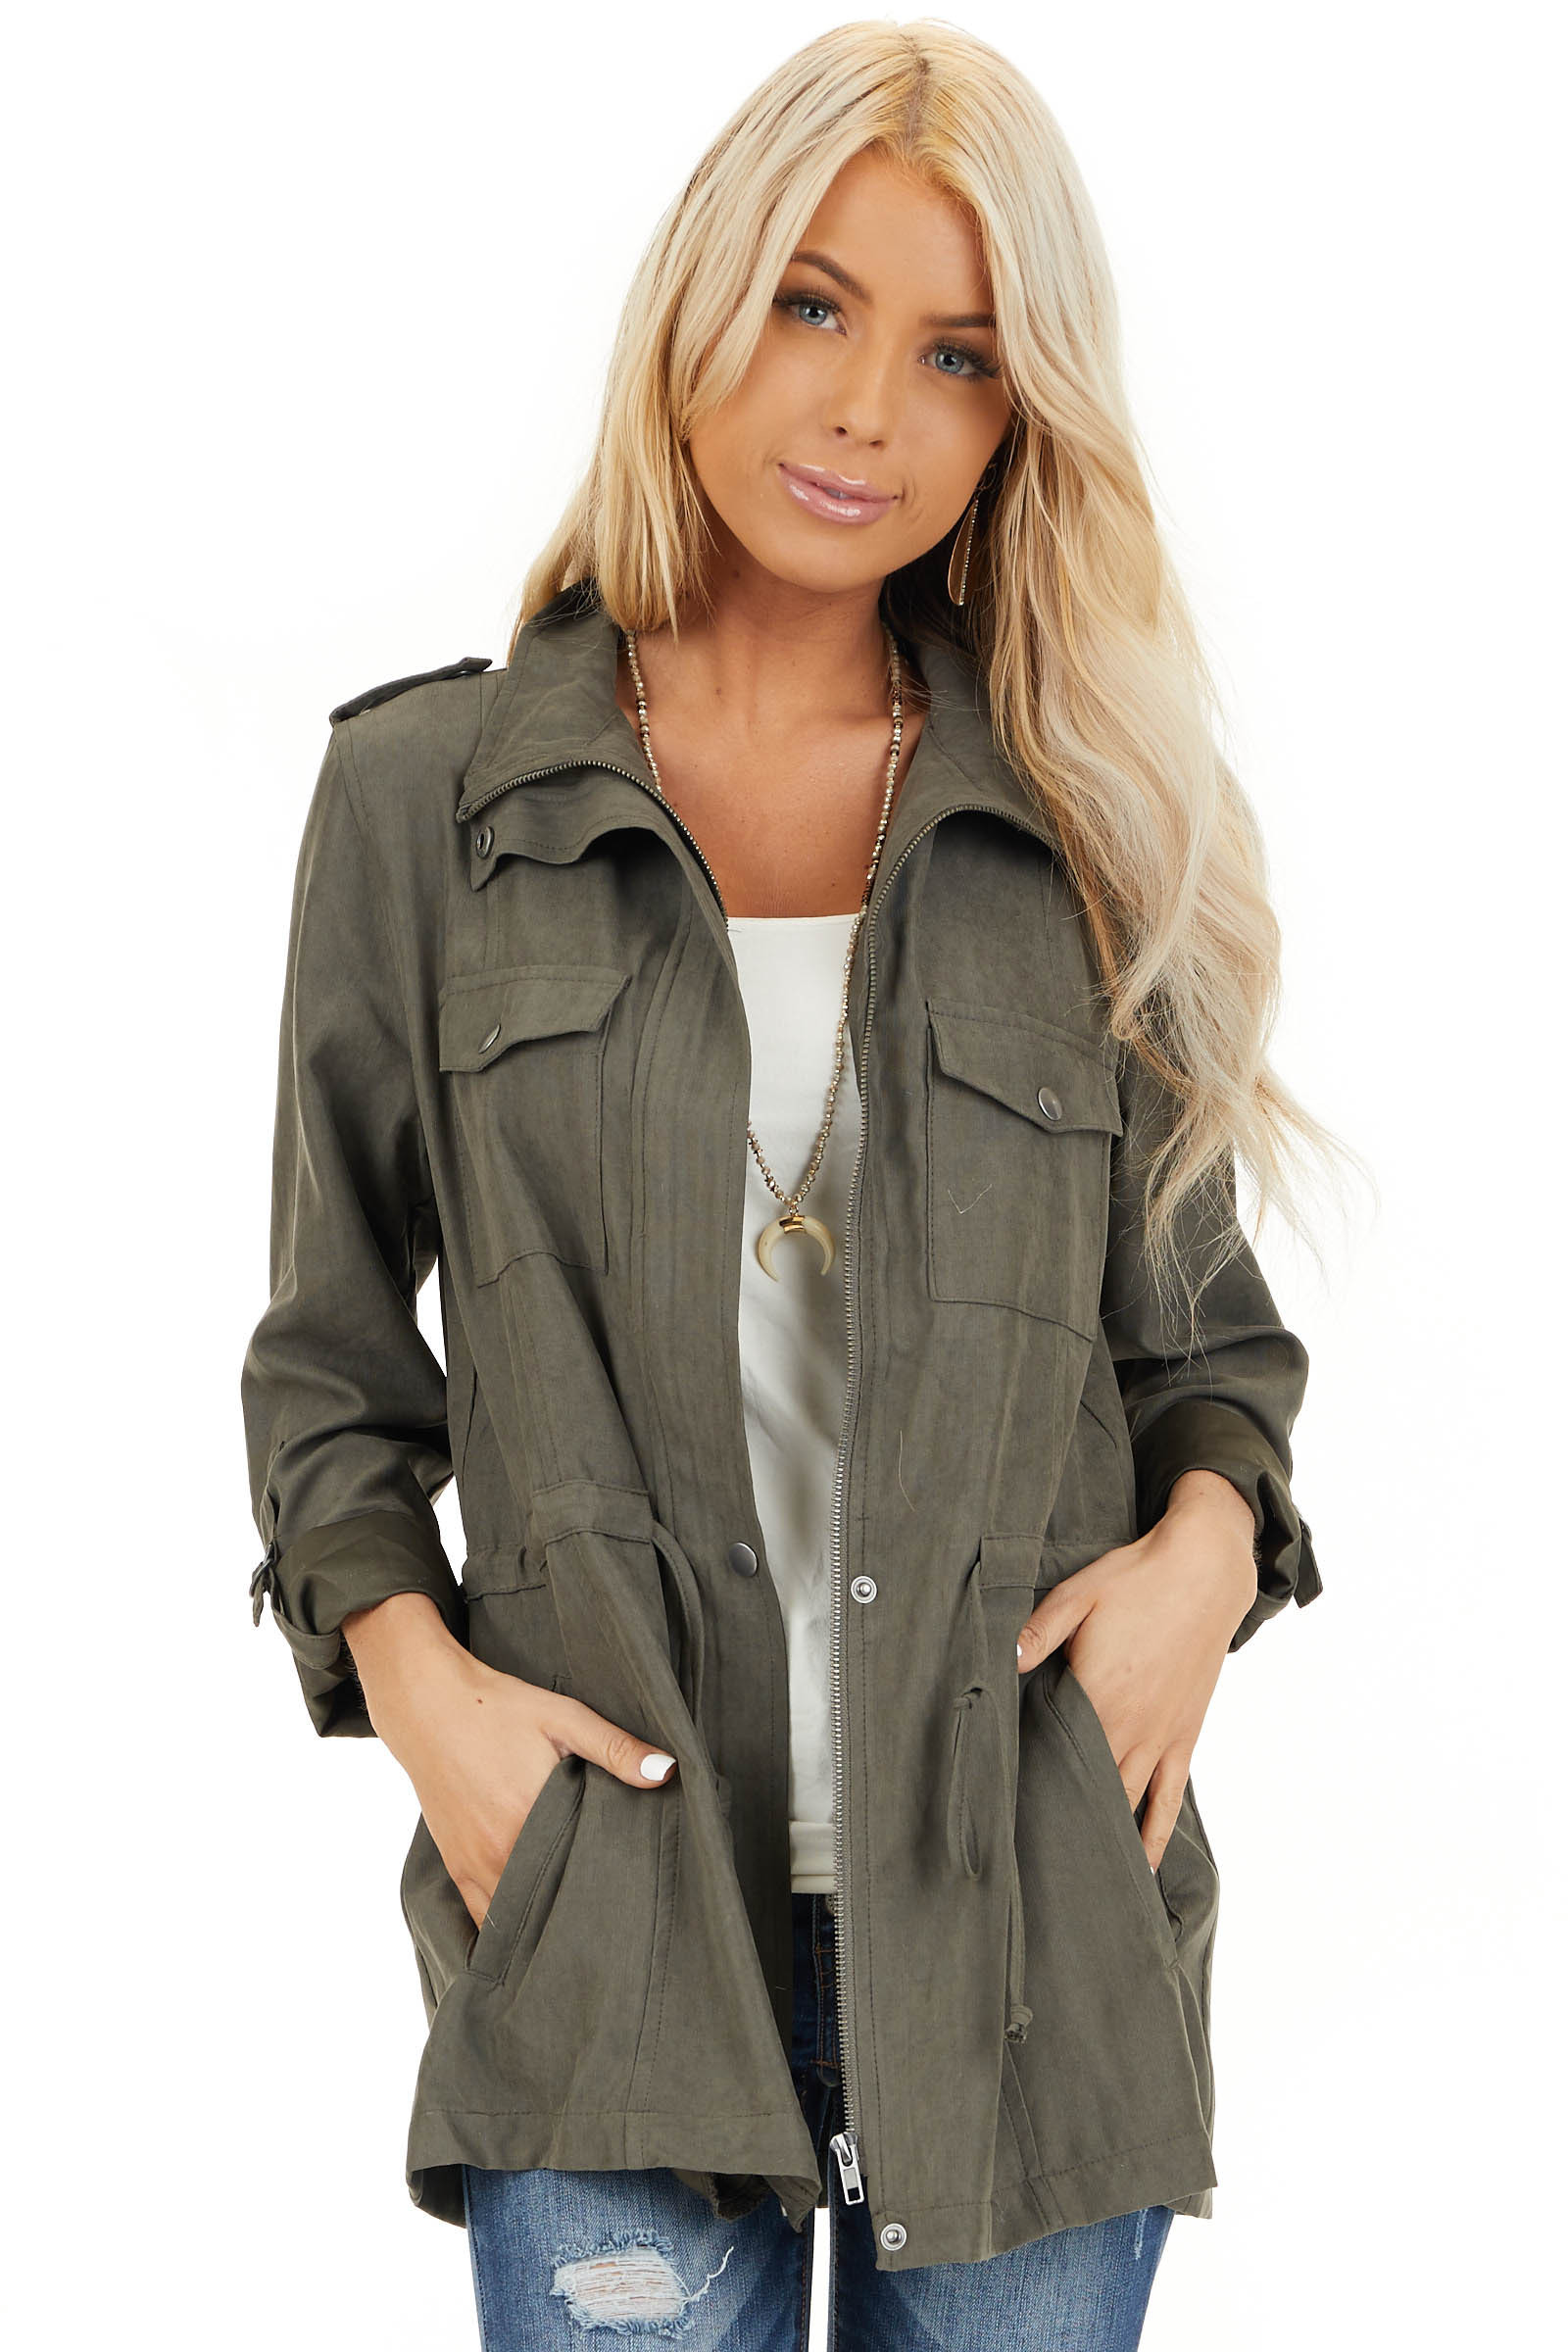 Deep Olive Lightweight Jacket with Drawstring Waist front close up